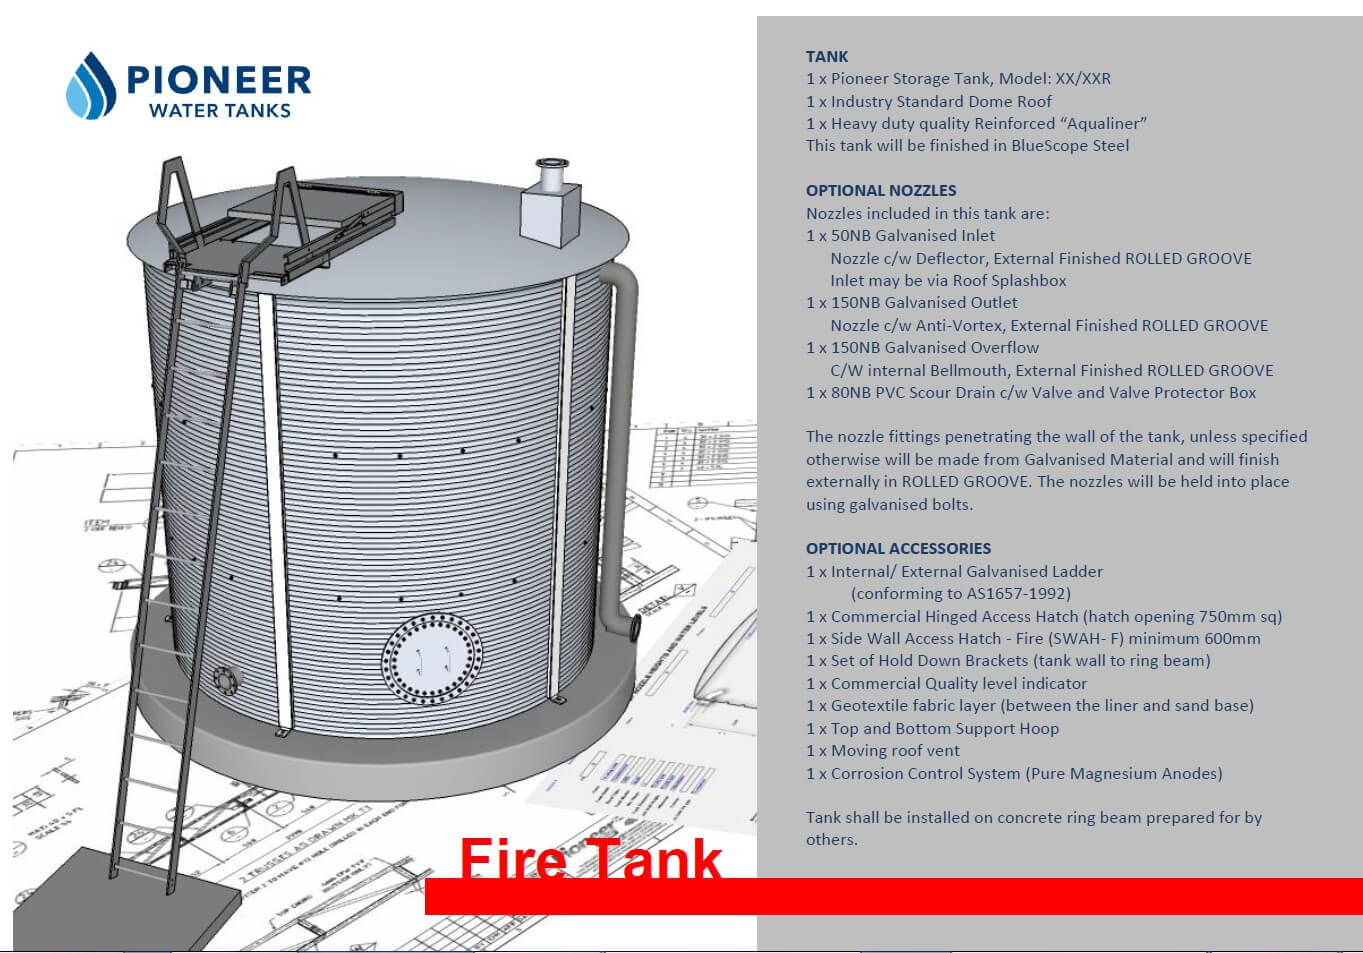 Sku K 8235 furthermore Smoke Ventilation Equipment additionally Stainless Steel Ibc as well Nfpa20 Standard For The Installation Of Stationary Pumps For Fire Protection  patibility Mode as well Orbit Easy Wire System. on sprinkler system